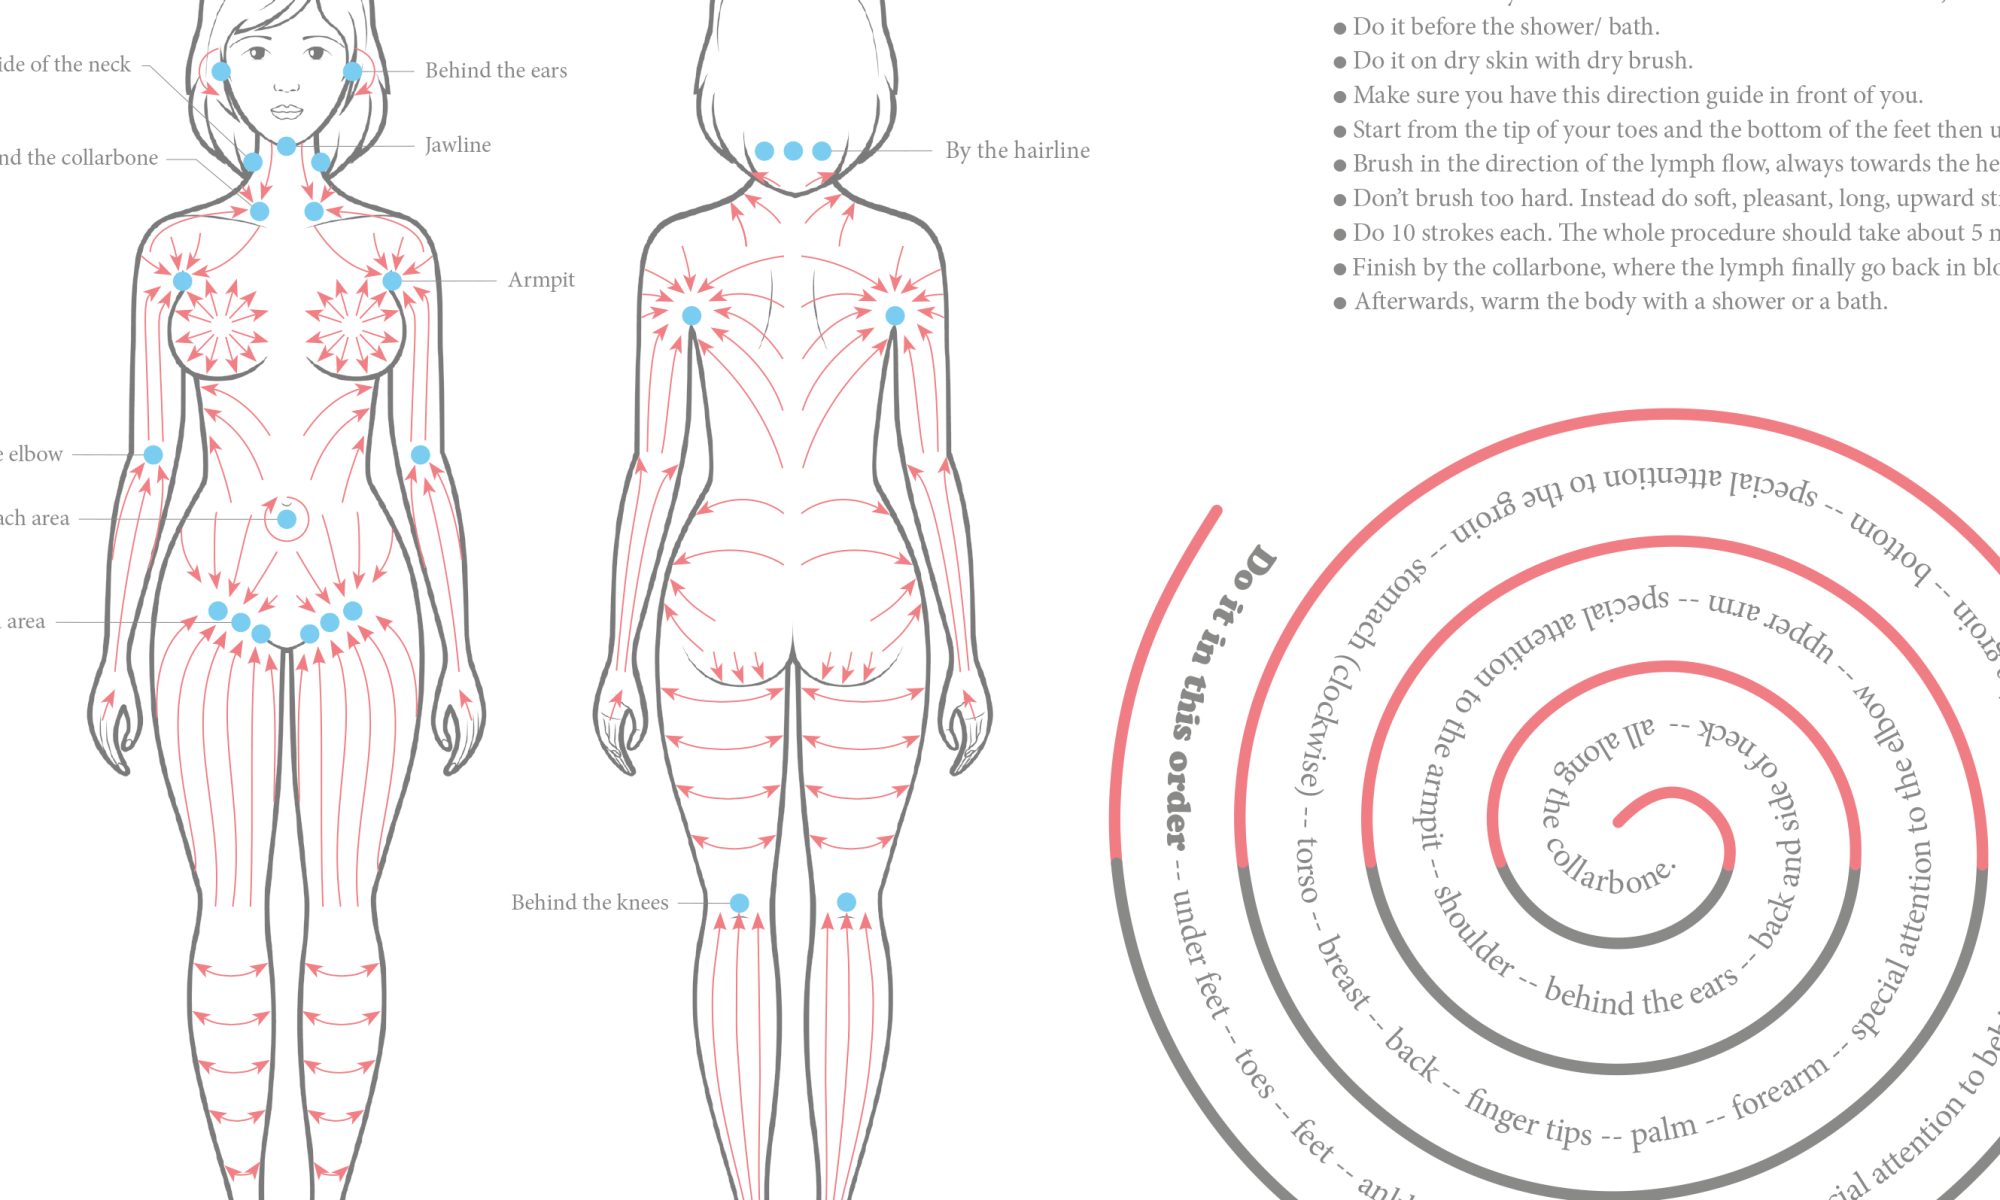 Dry body brushing chart/ guide - Well-being